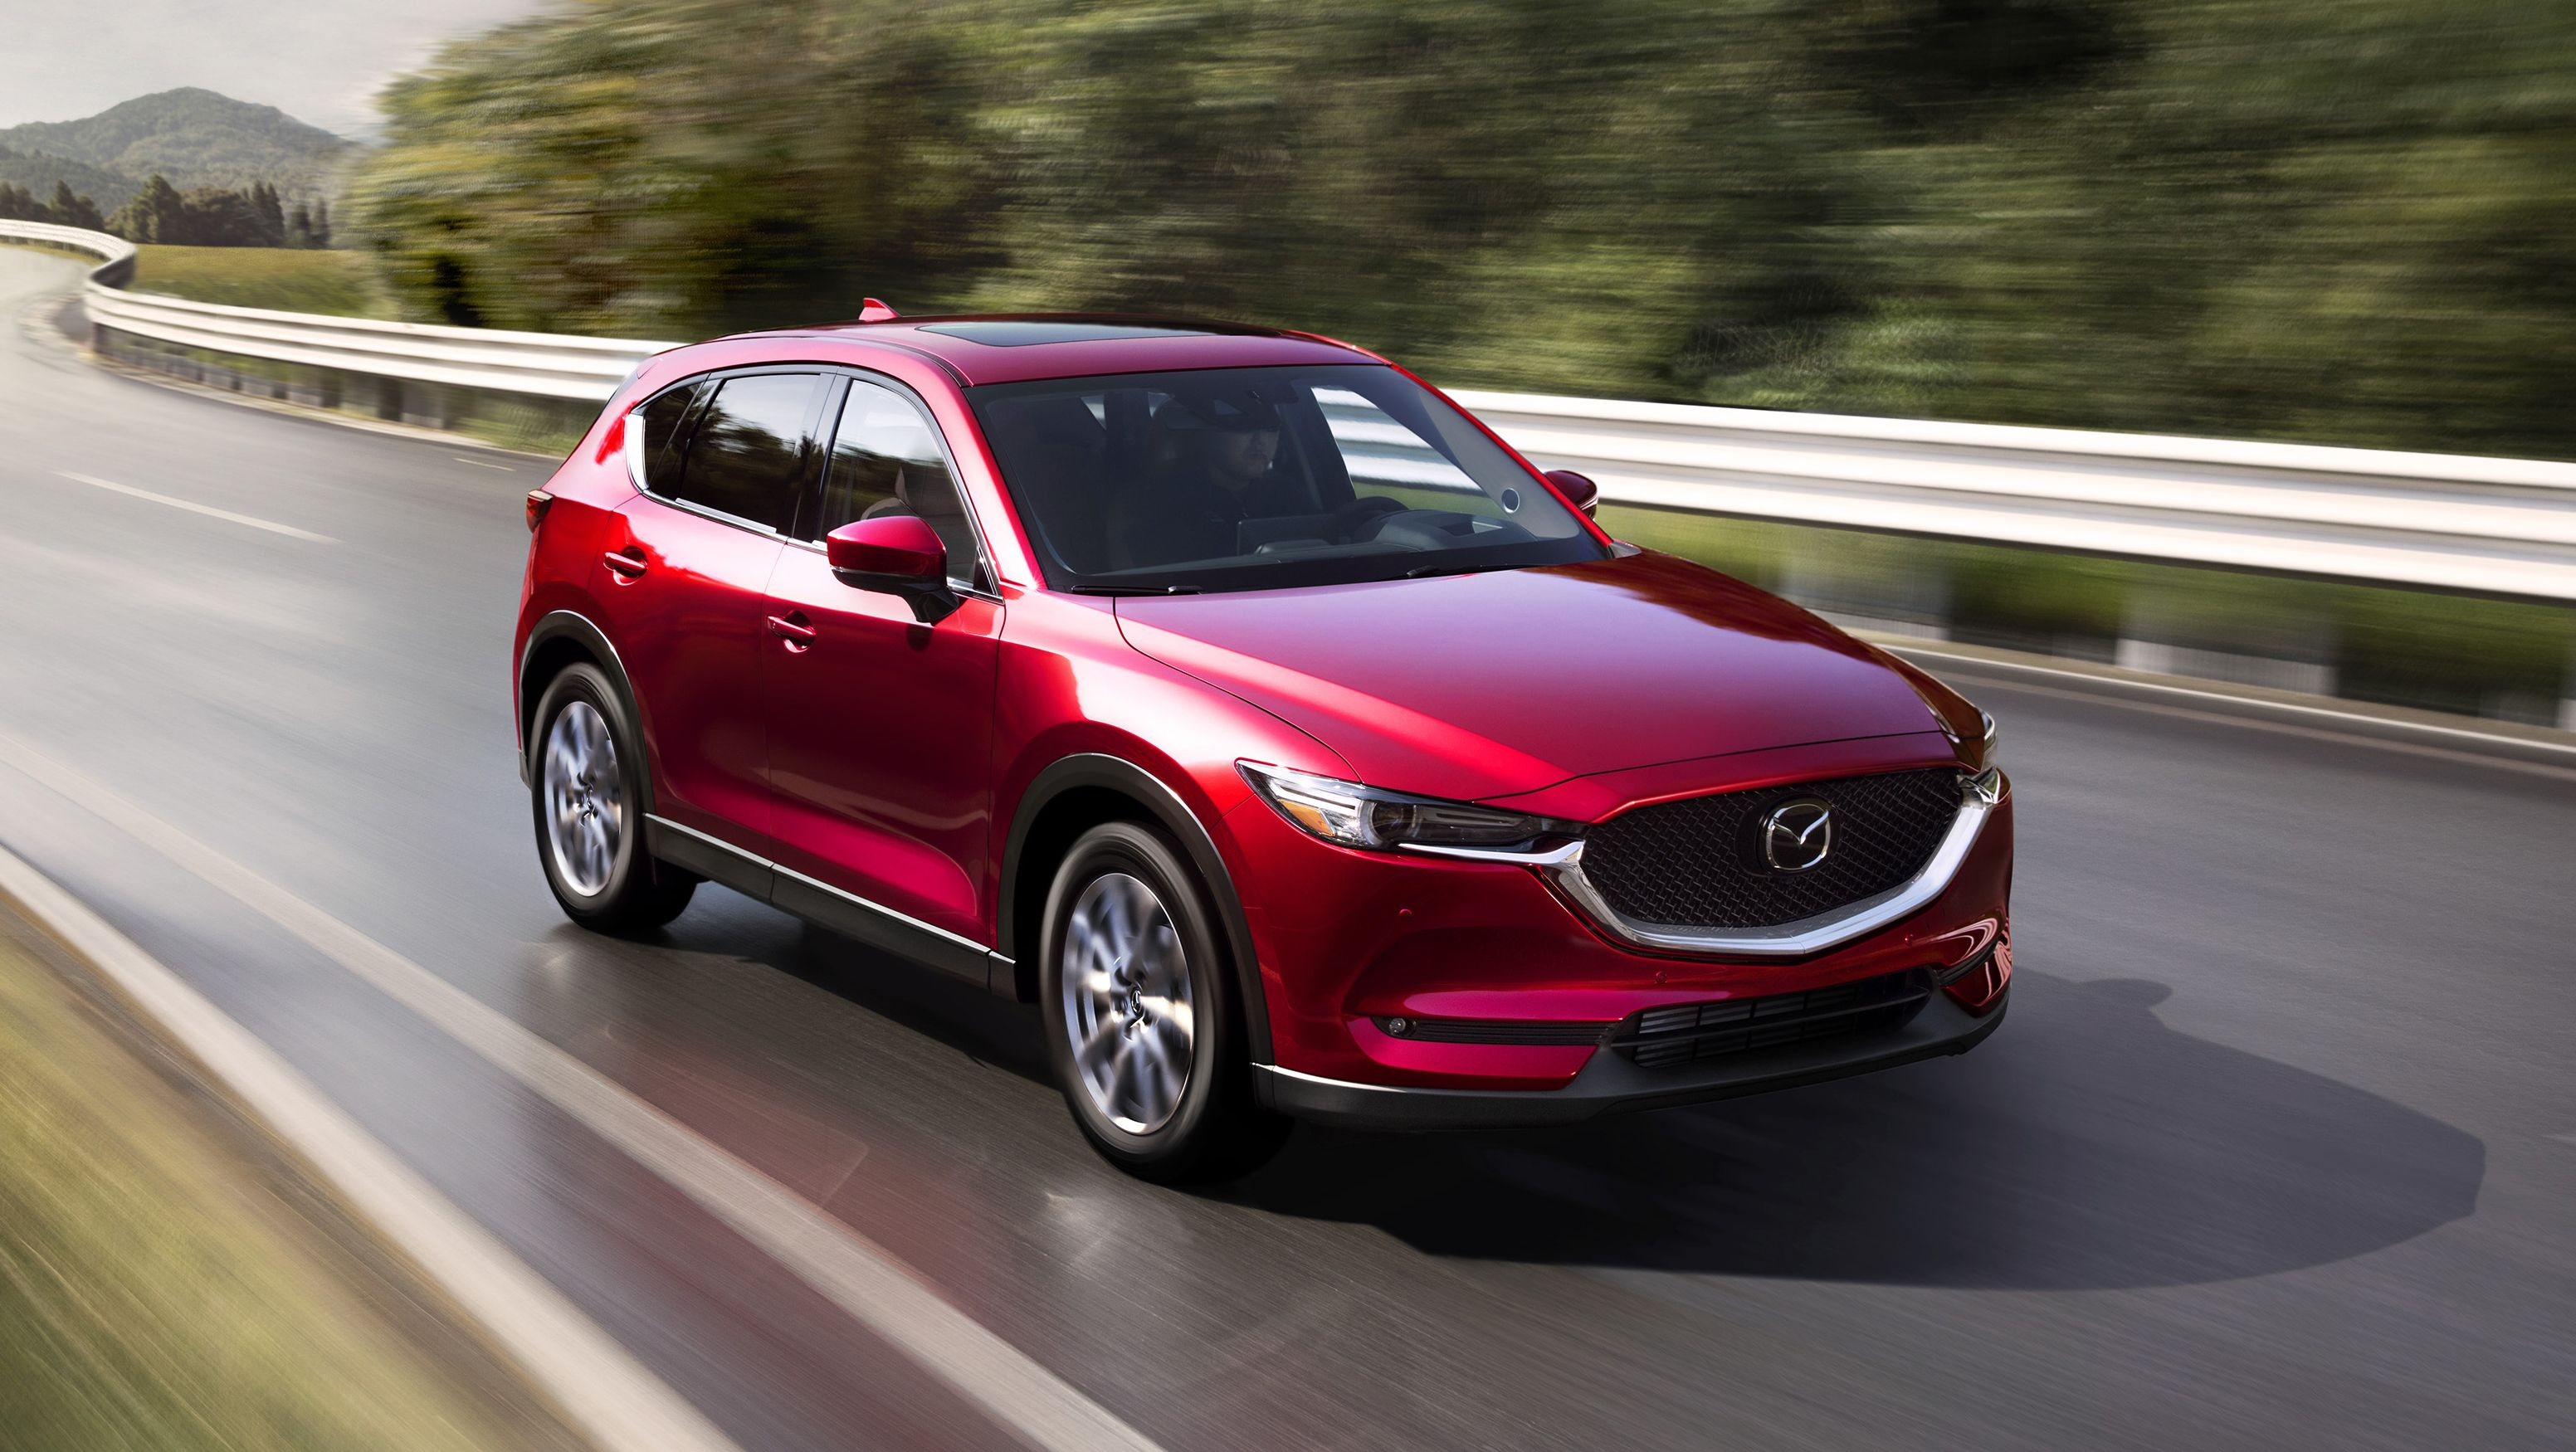 2021 Mazda CX-5 Review, Pricing, and Specs